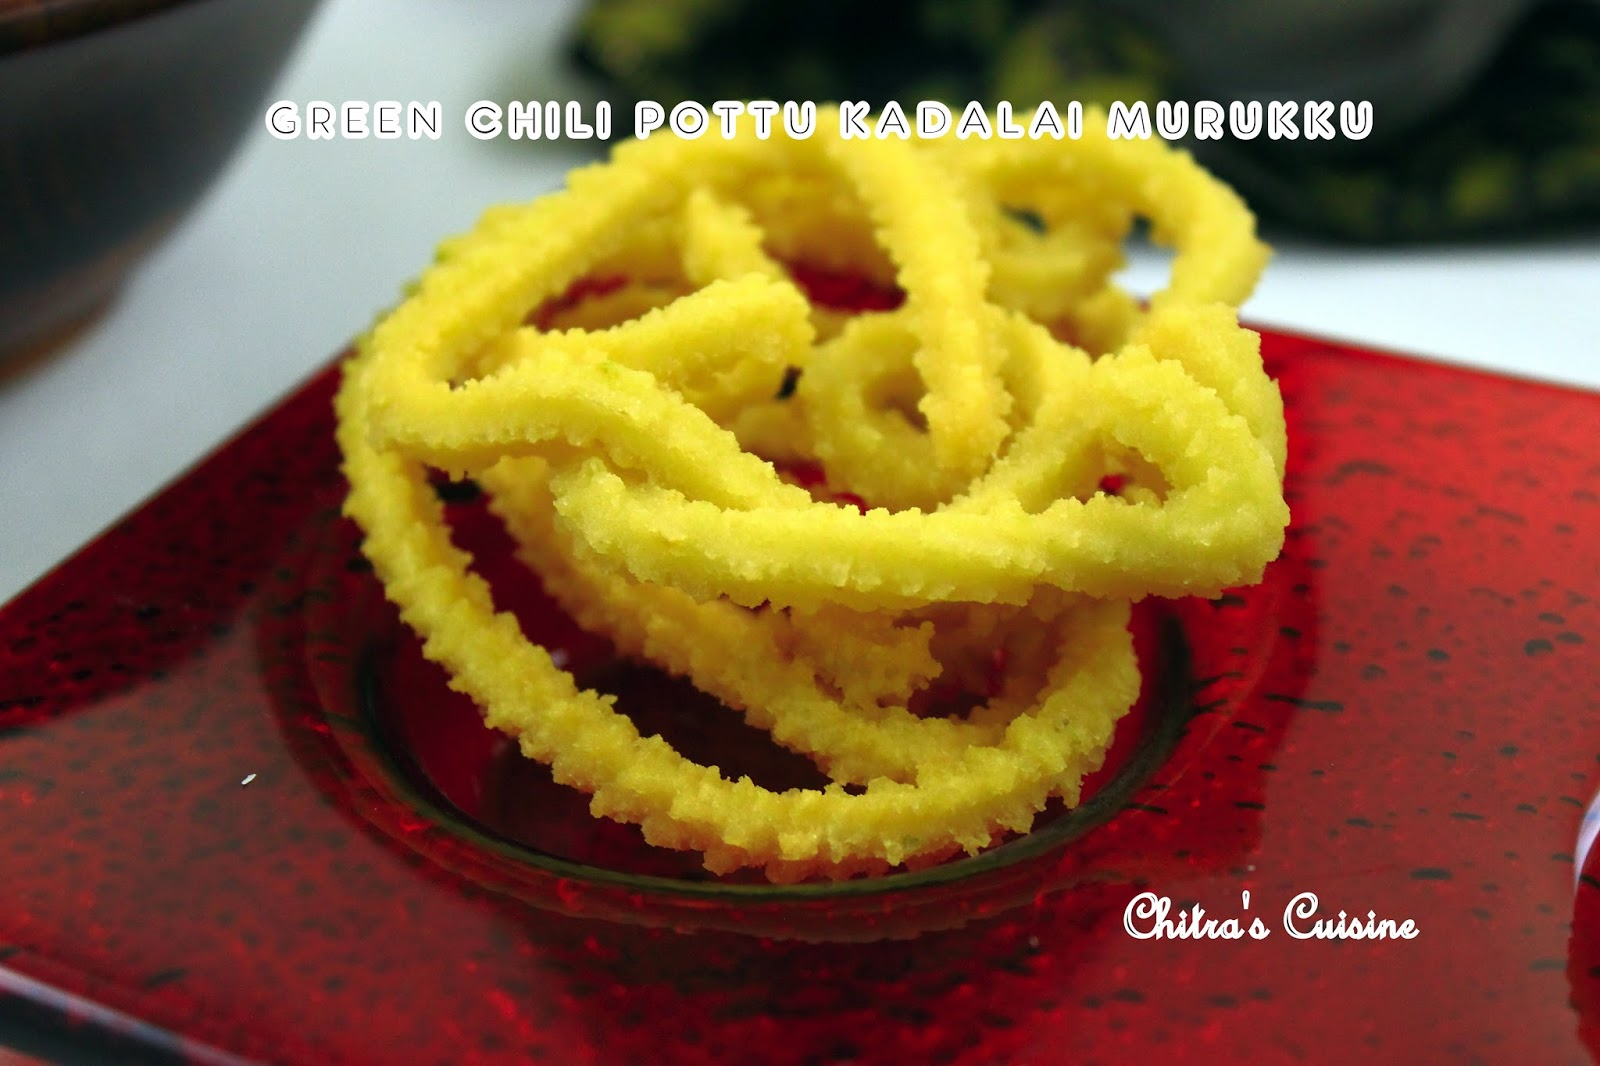 green-chili-pottukadalai-murukku